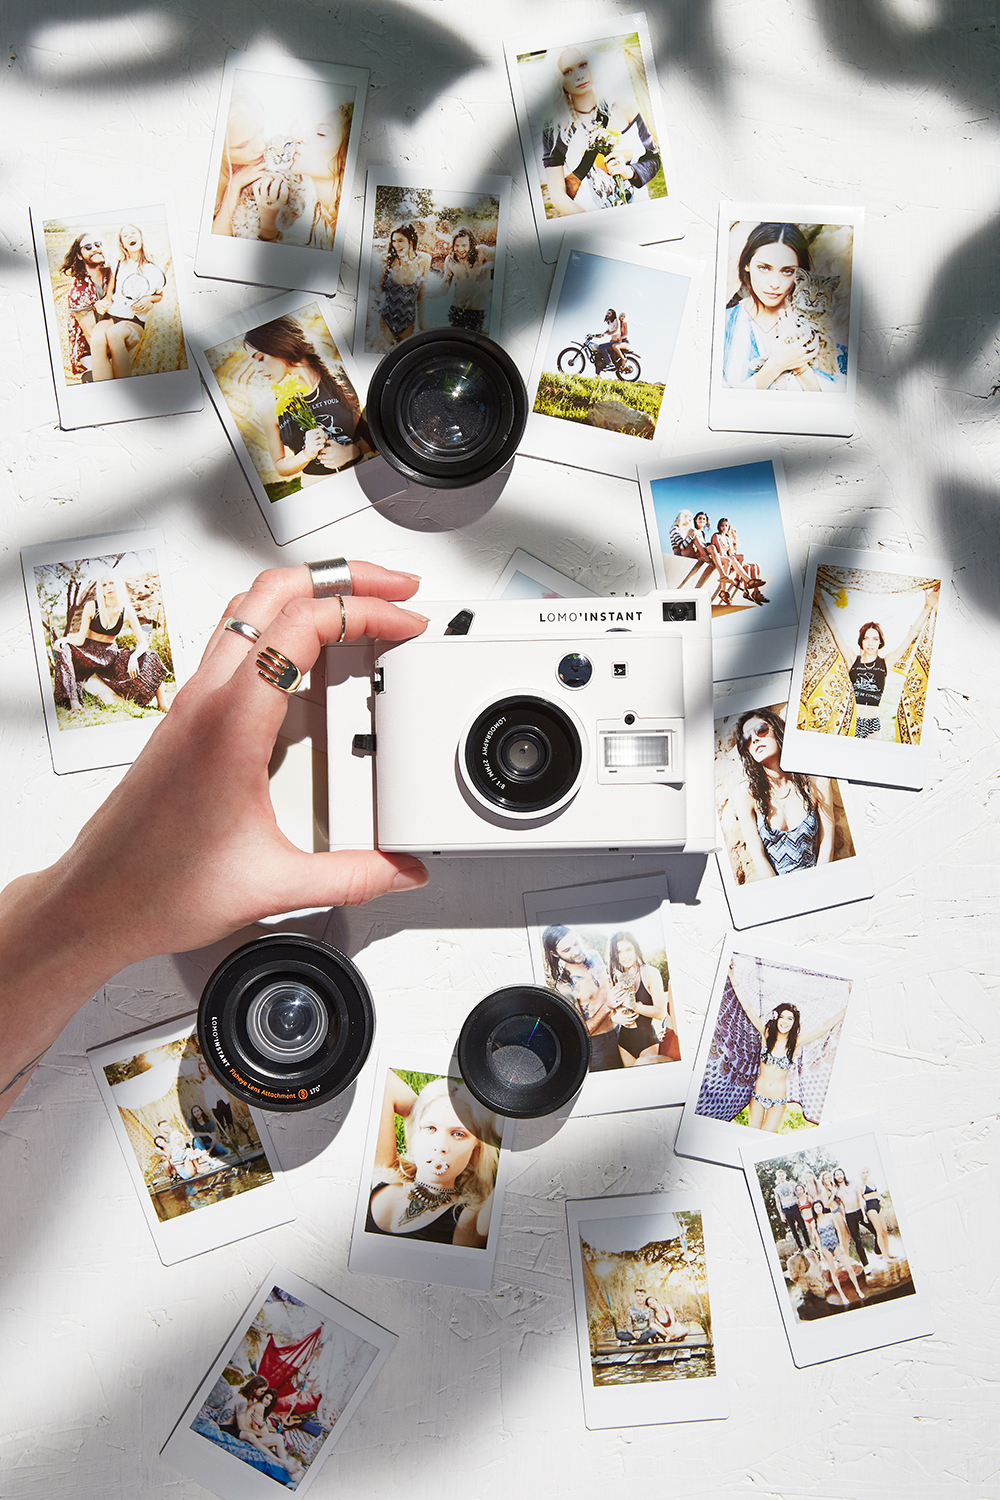 Must Have Lomoinstant Little Fashion Paradise Lomography Instant Camera Lenses San Sebastian Edition Every Features A Compact Body Built In Flash Multiple Exposure Buttons And An Optional Selection Of This Could Be The Perfect